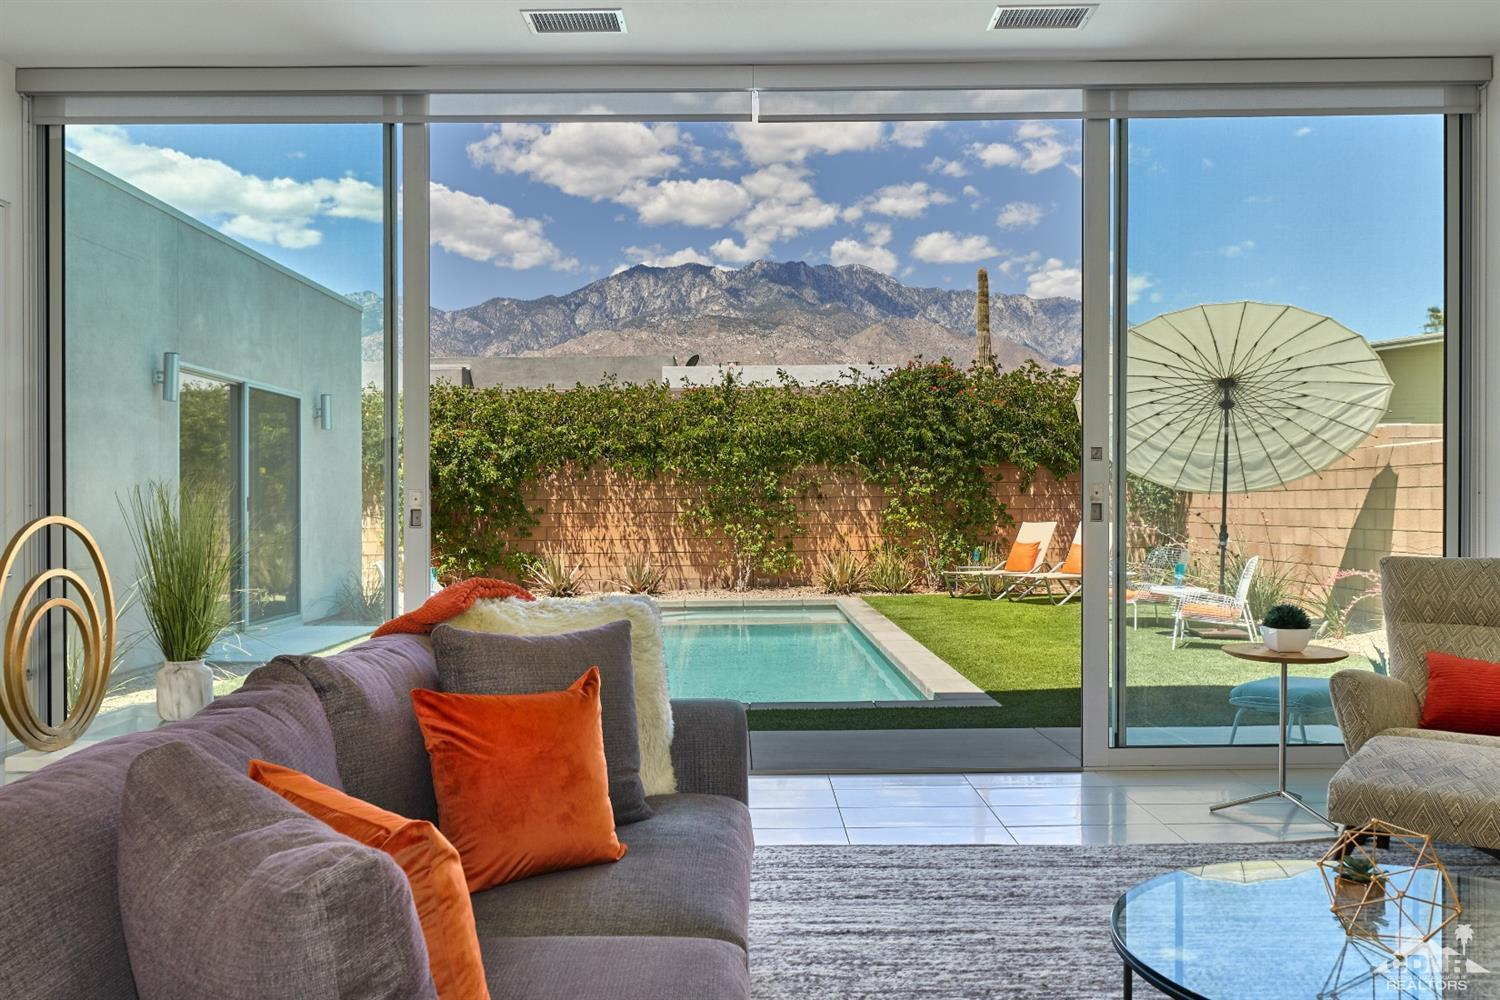 663 Bliss Way, Palm Springs, California 92262, 3 Bedrooms Bedrooms, ,3 BathroomsBathrooms,Residential,Sold,663 Bliss Way,219015297